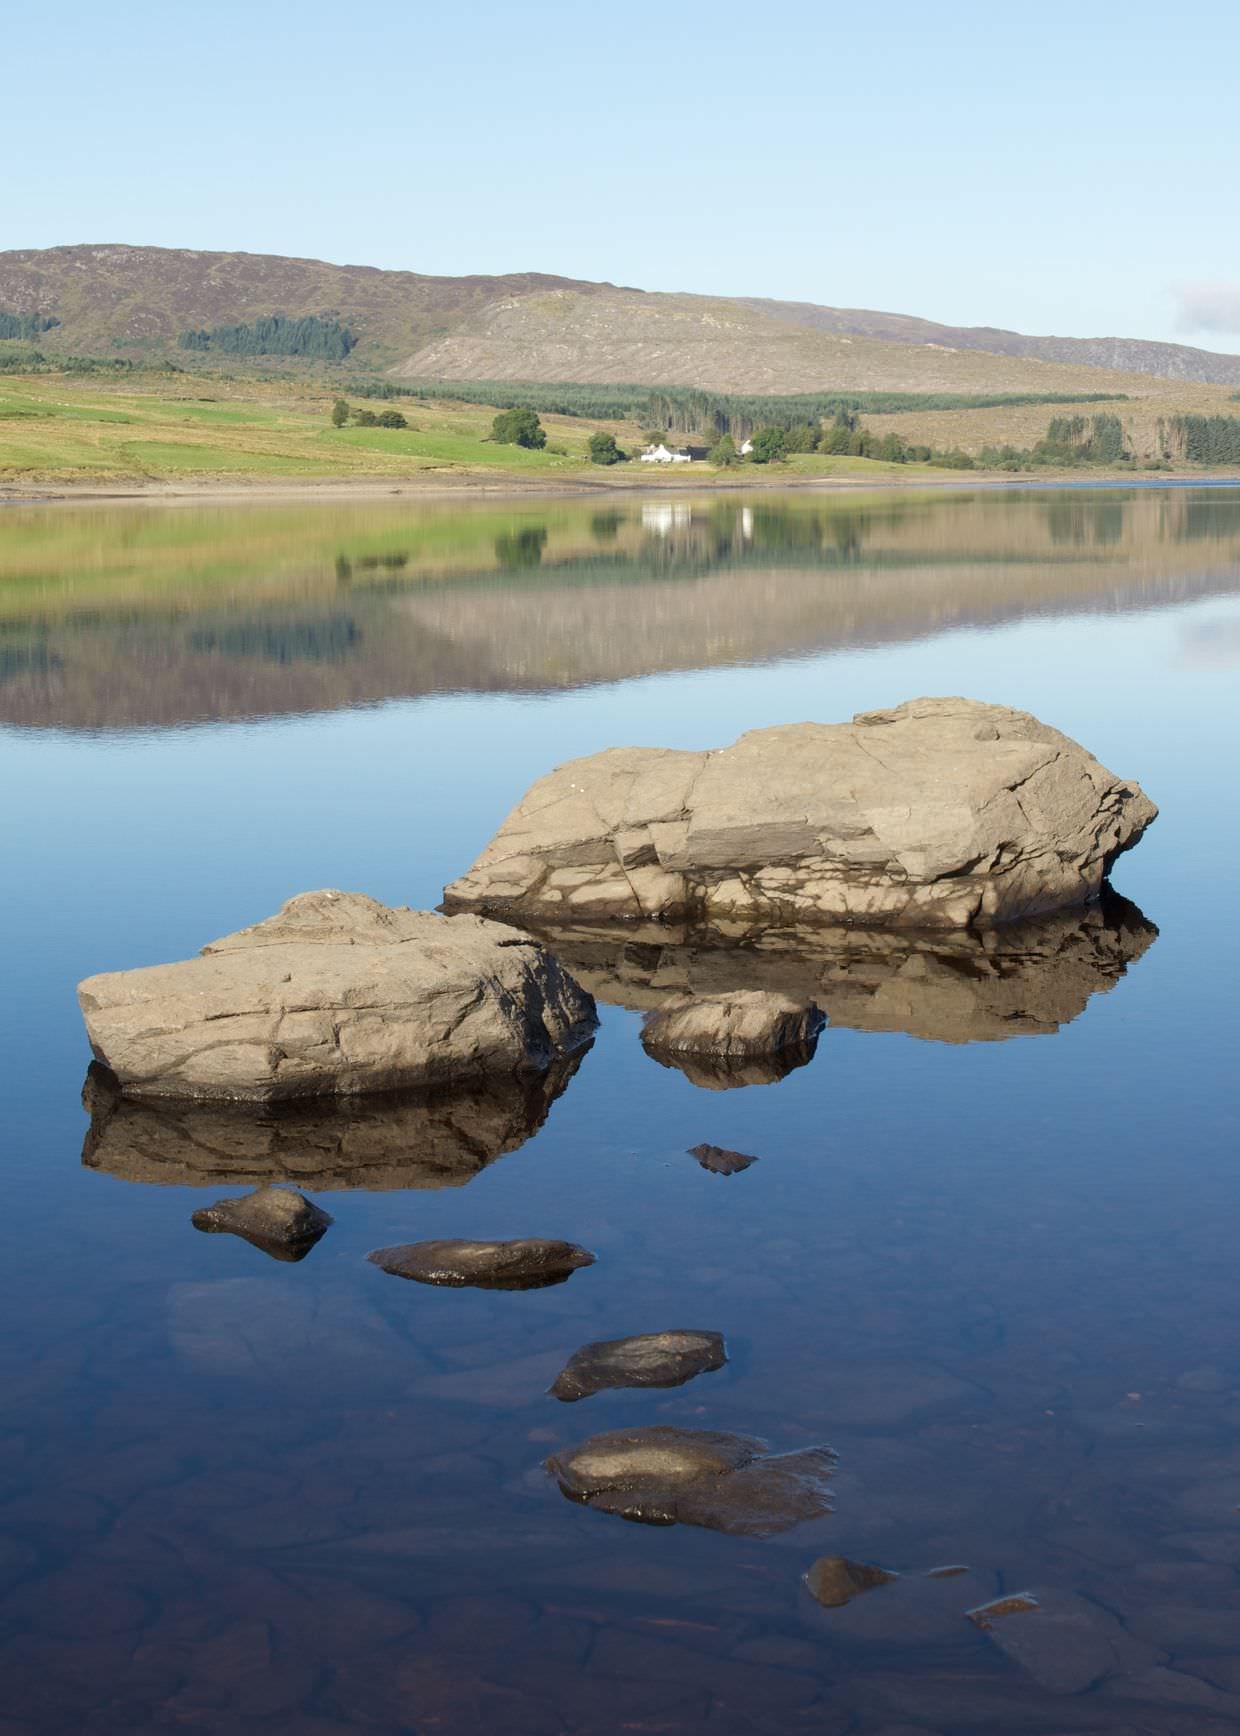 Reflections on Clatteringshaws Reservoir